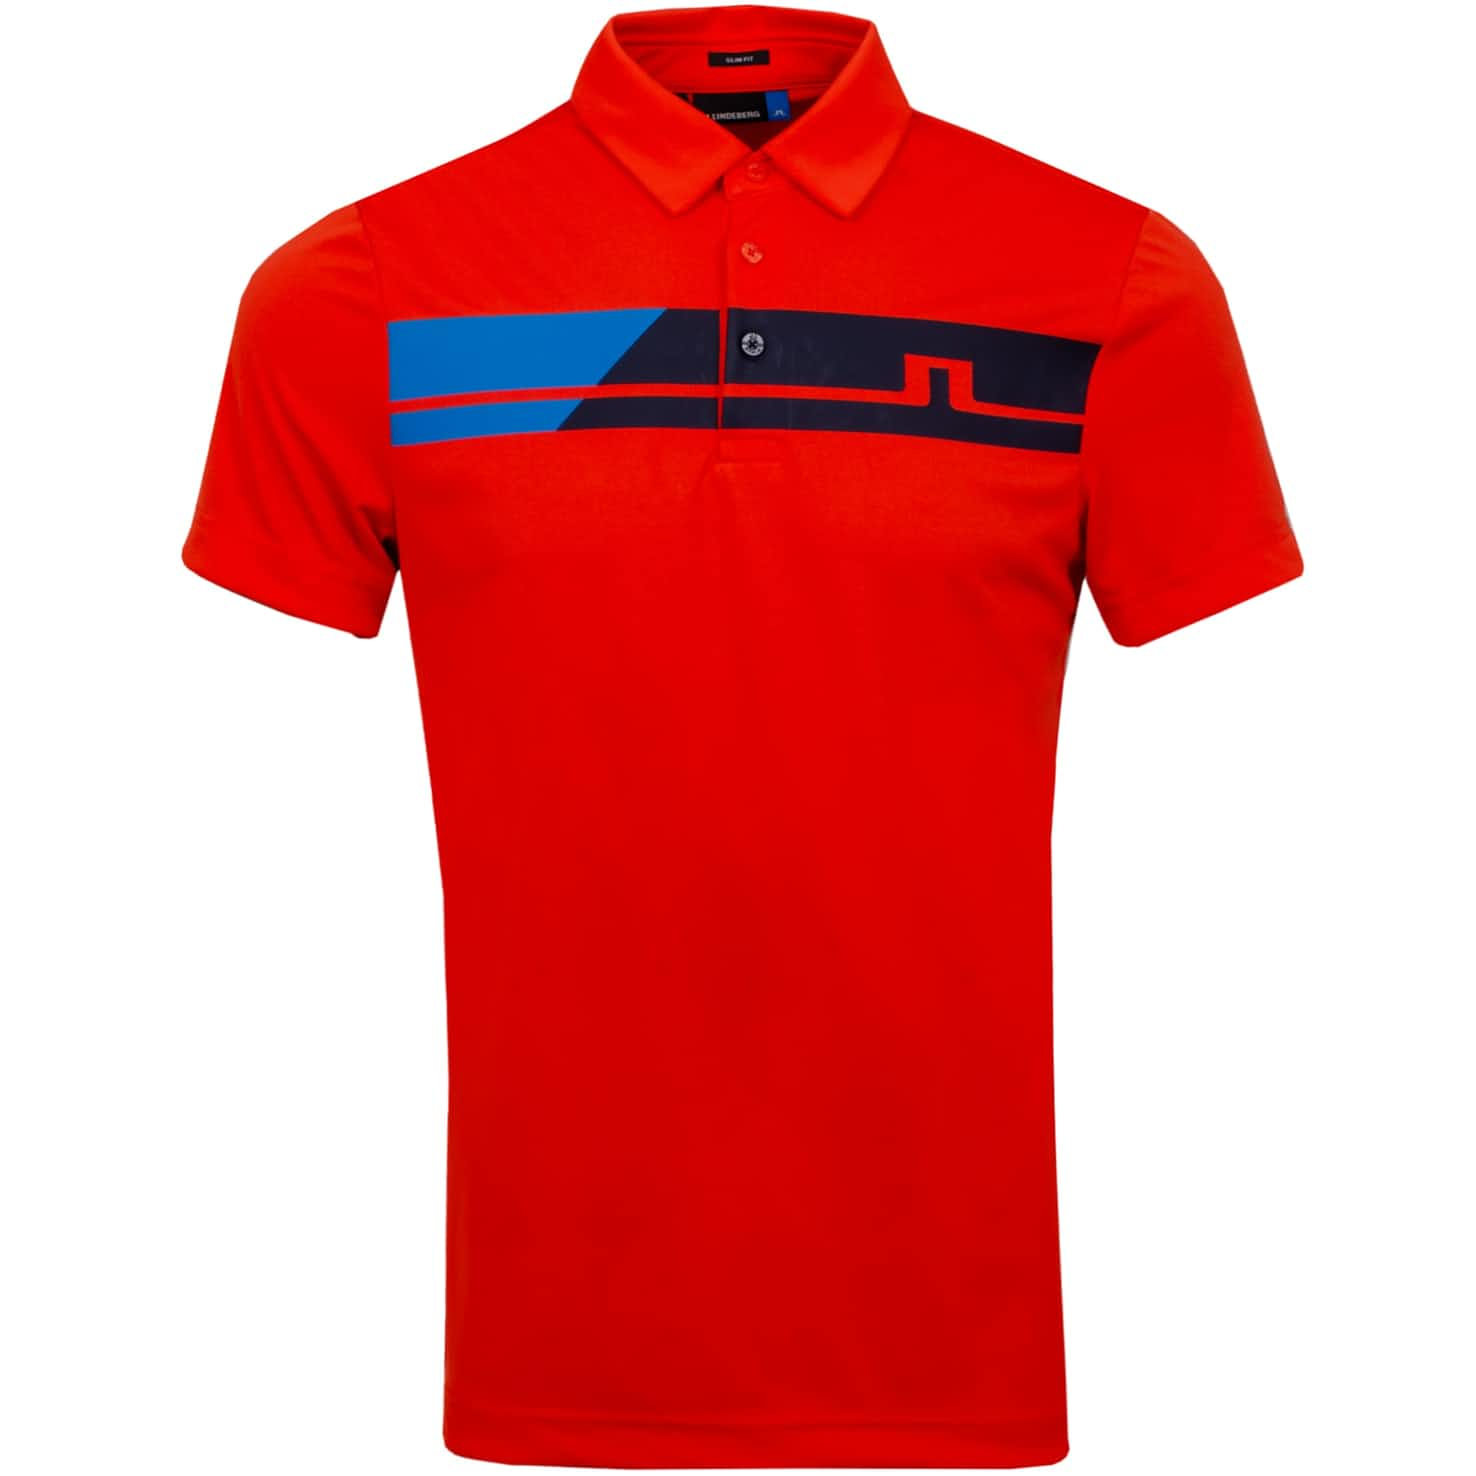 Clark Slim Fit TX Jersey Tomato Red - SS20